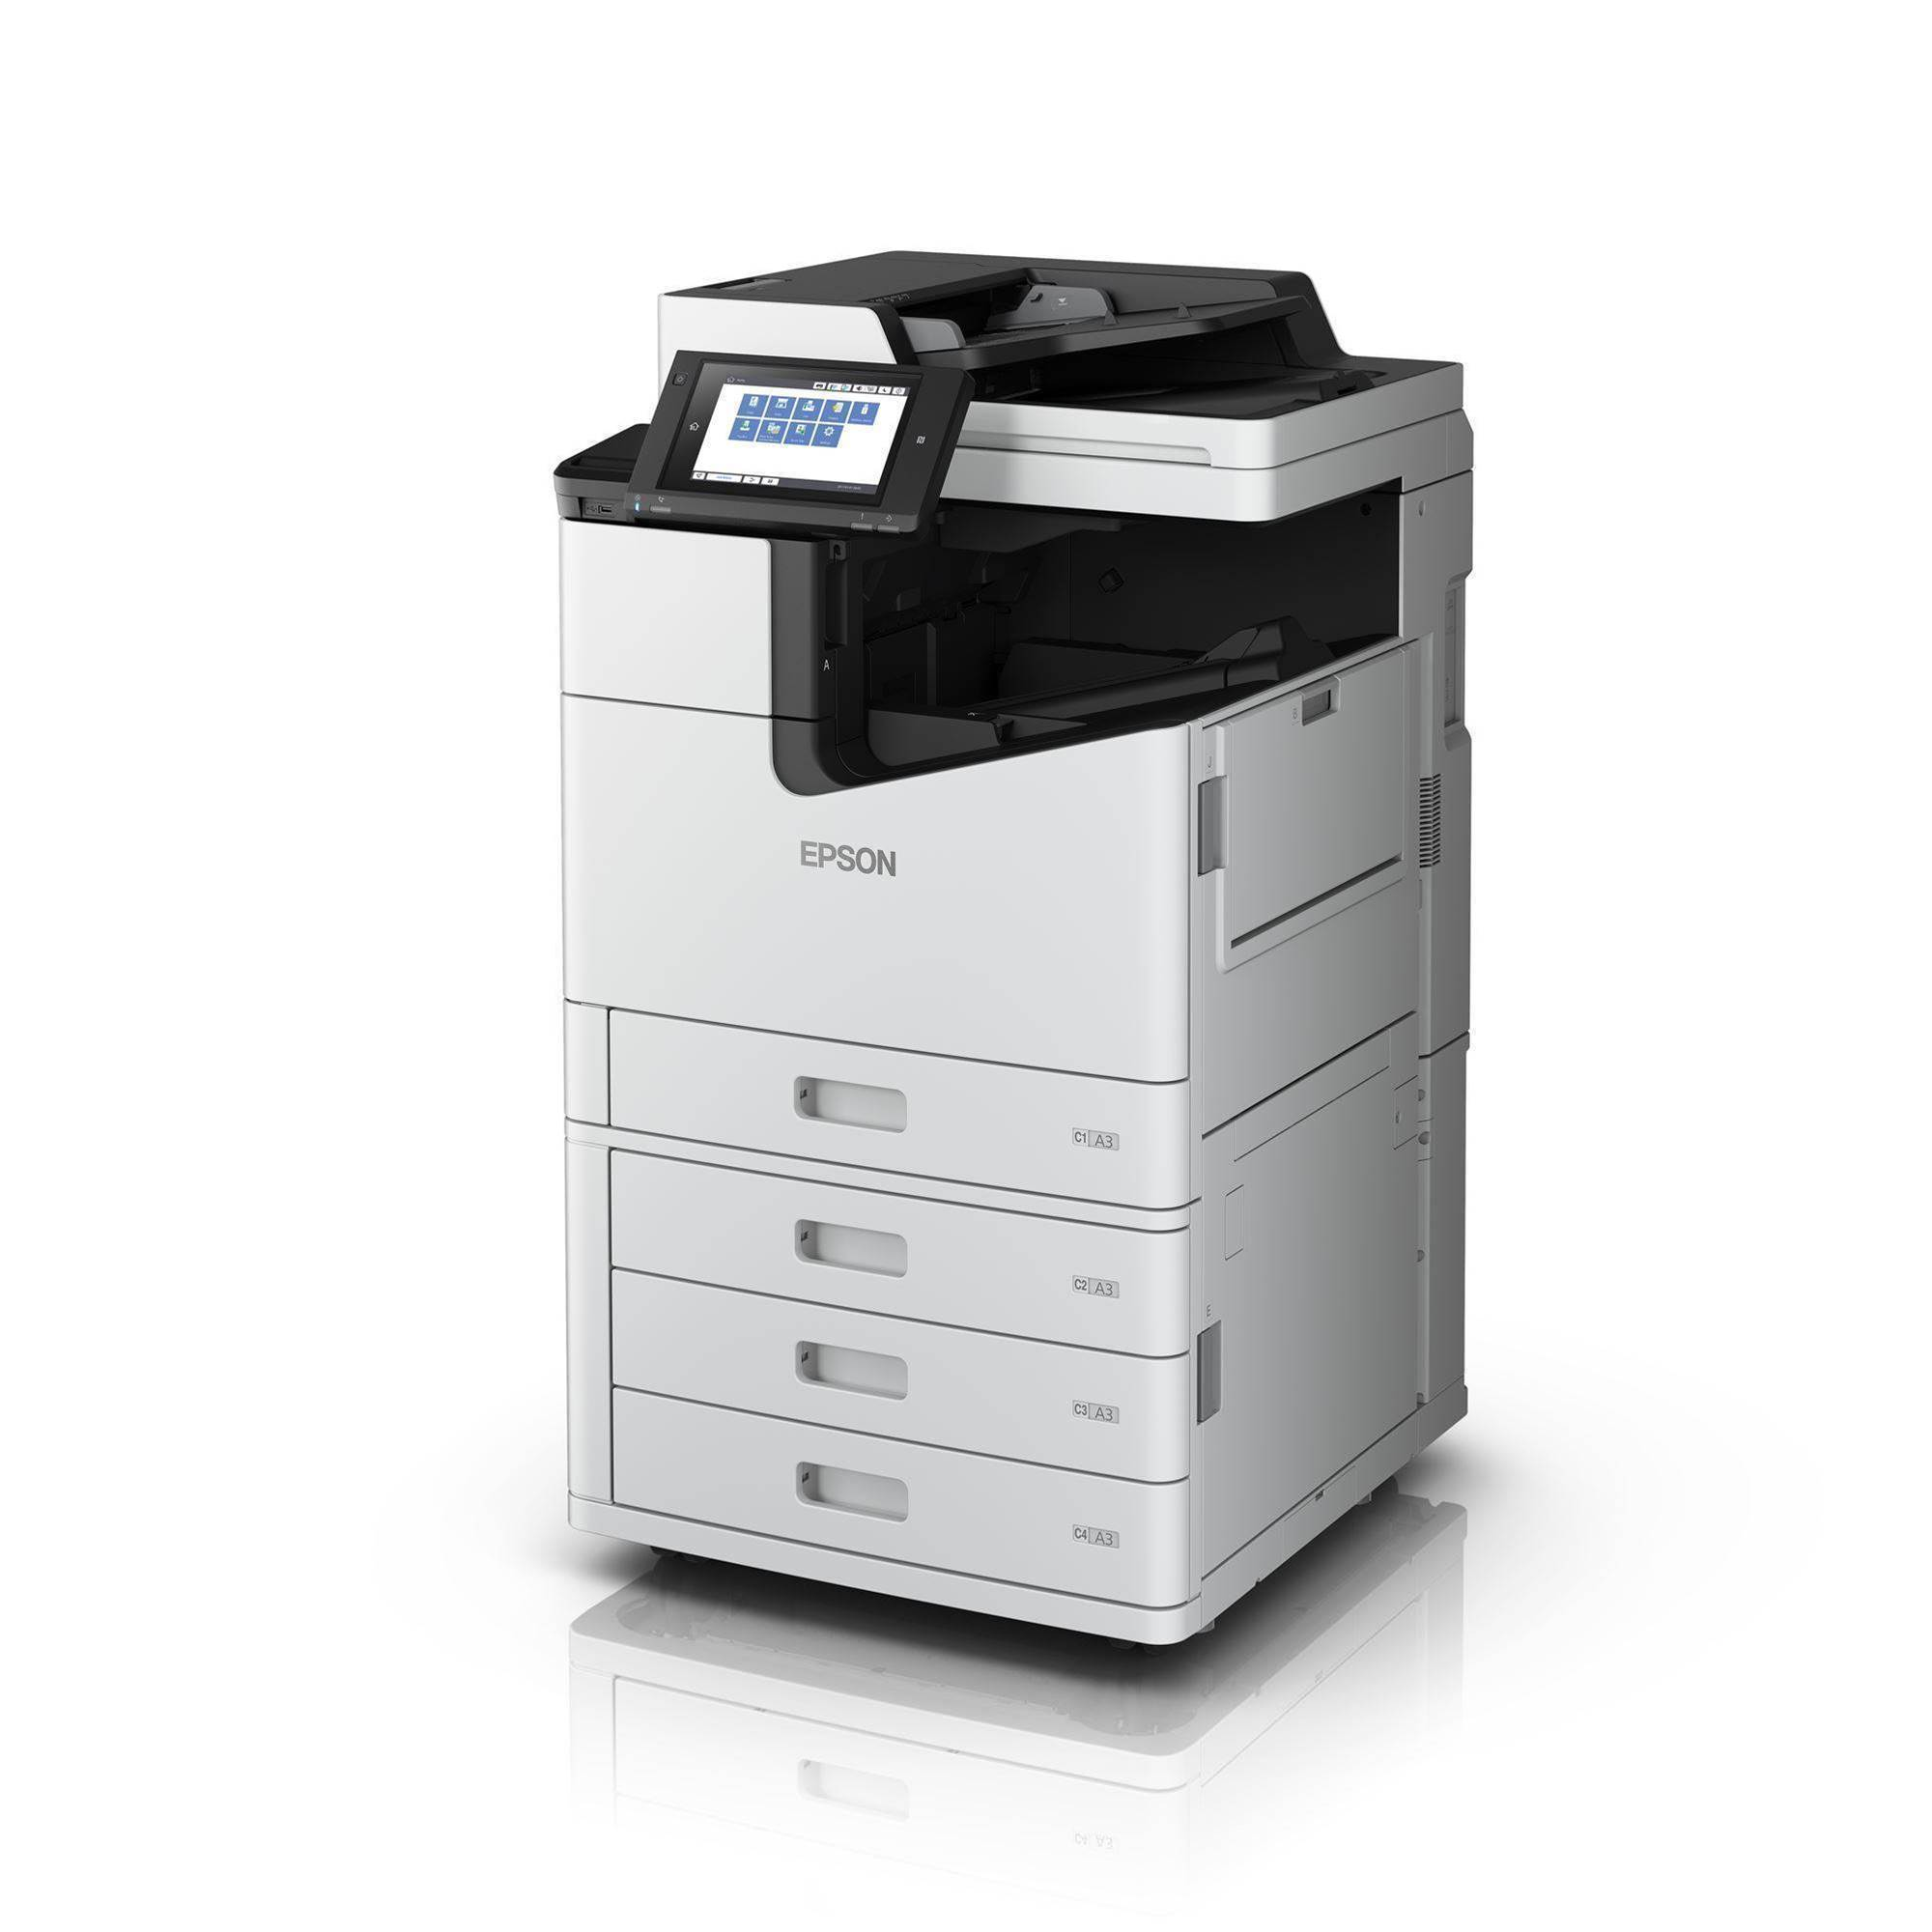 Epson unveils 100ppm enterprise colour printer